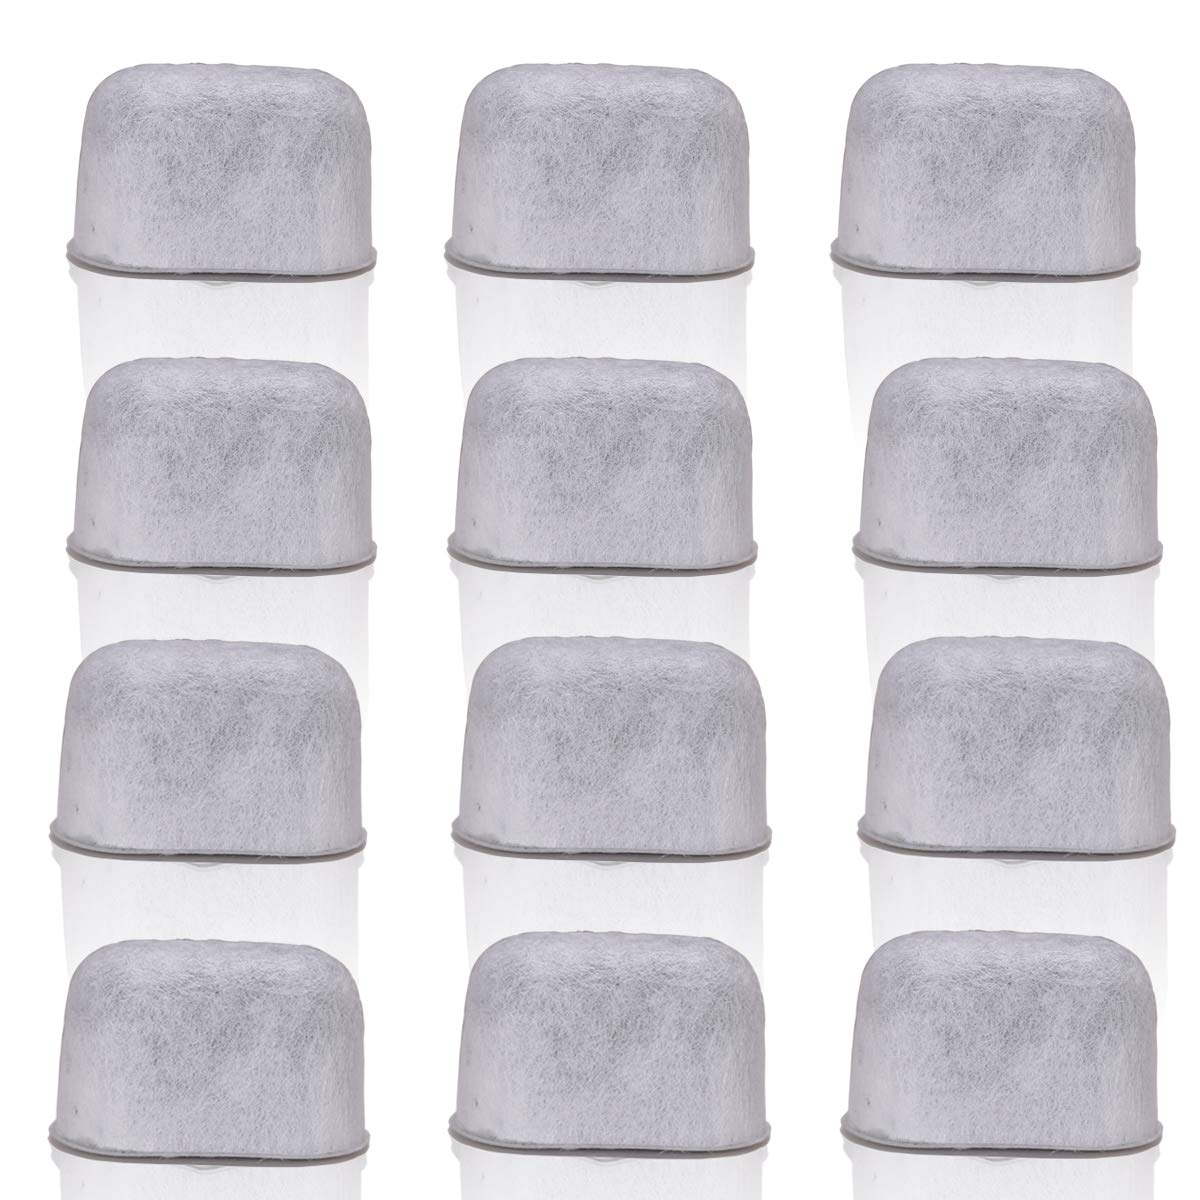 ALTME Keurig Coffee Filter Replacement 12 Pack Compatible Water Filters Universal Fit Keurig Compatible Filters Replacement Charcoal Water Filters for Keurig 2.0 and Classic 1.0 Coffee Machines